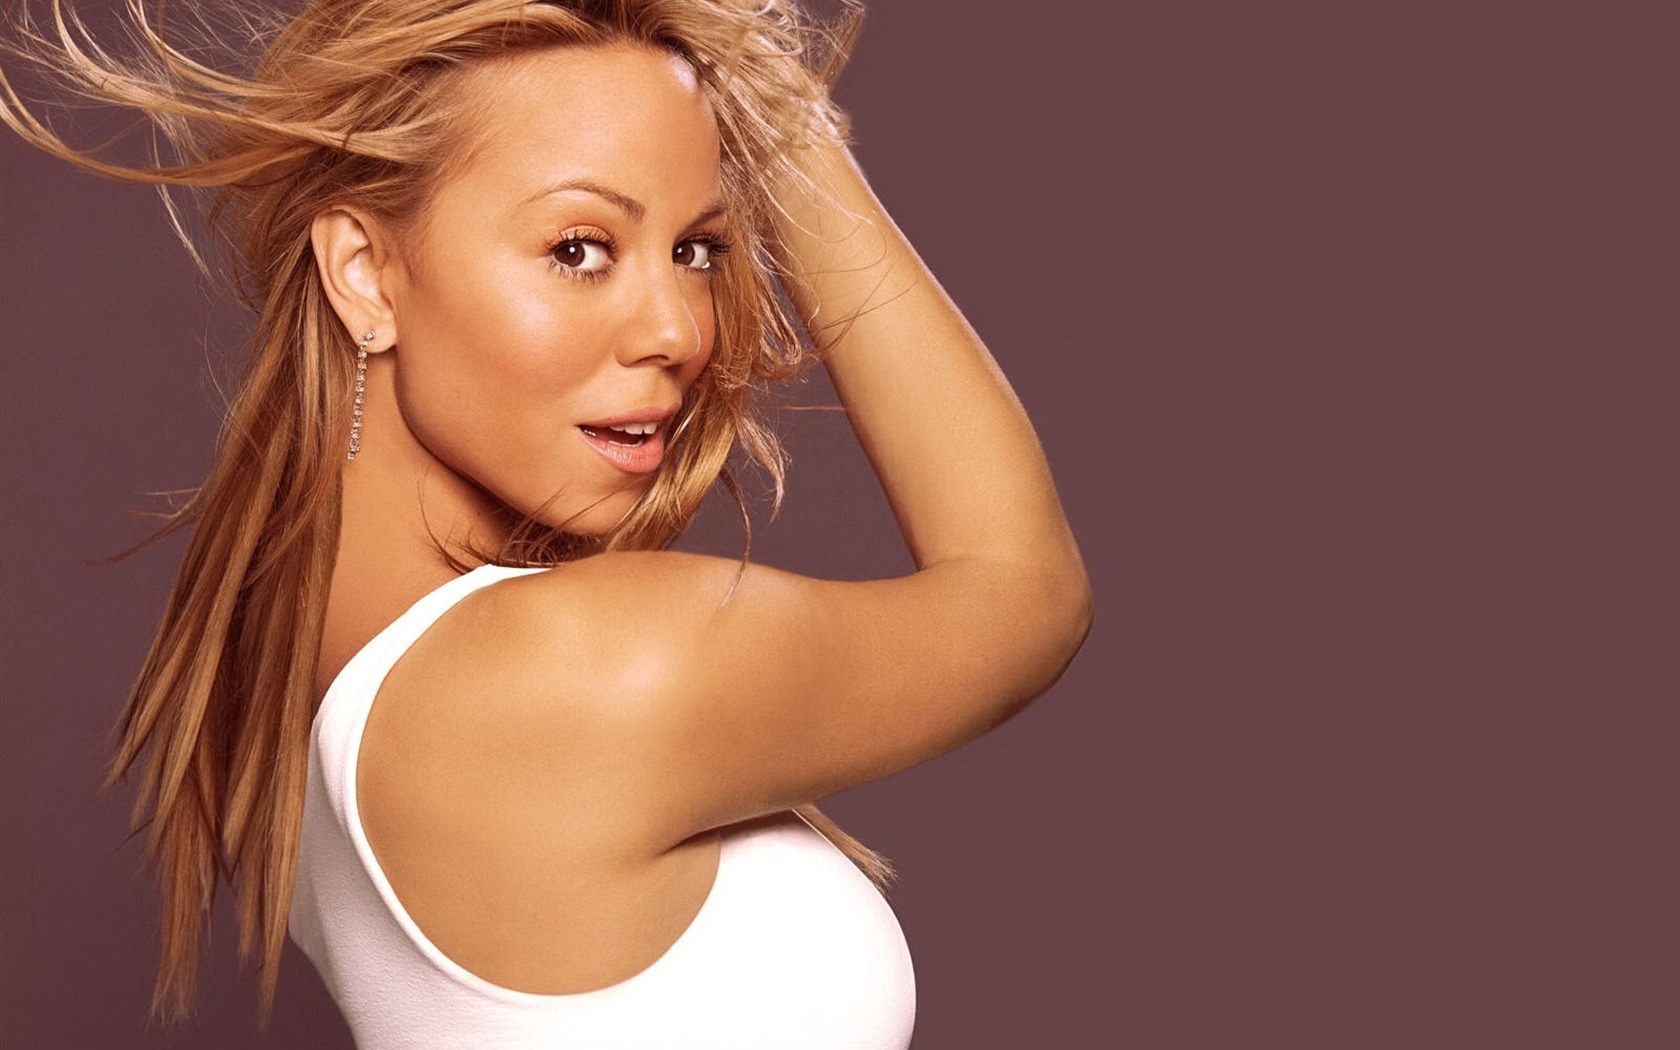 Mariah Carey #031 - 1680x1050 Wallpapers Pictures Photos Images